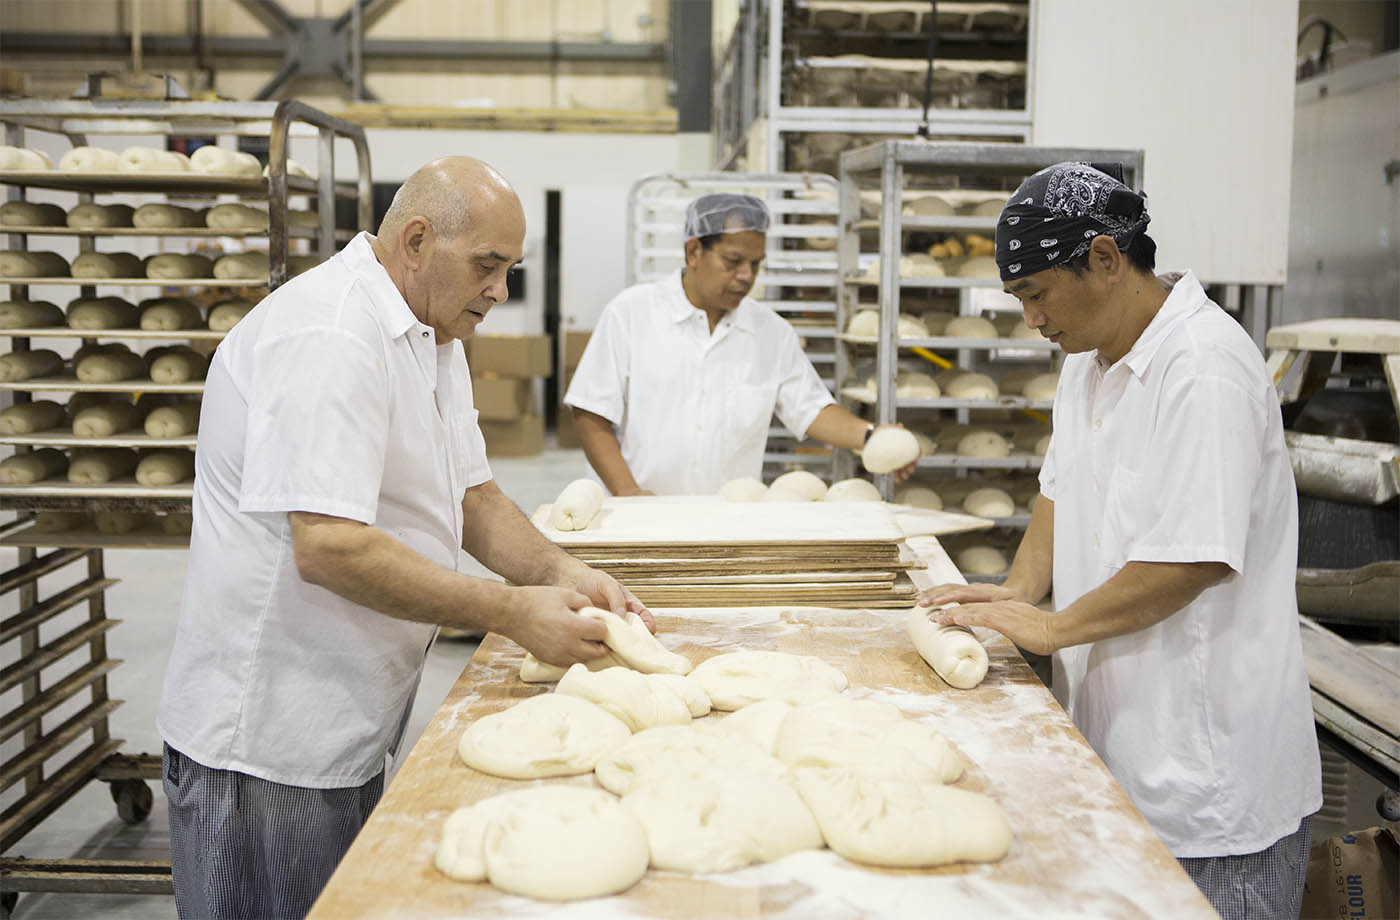 Euro Harvest Bakery photographed for DolceMediaGroup.com